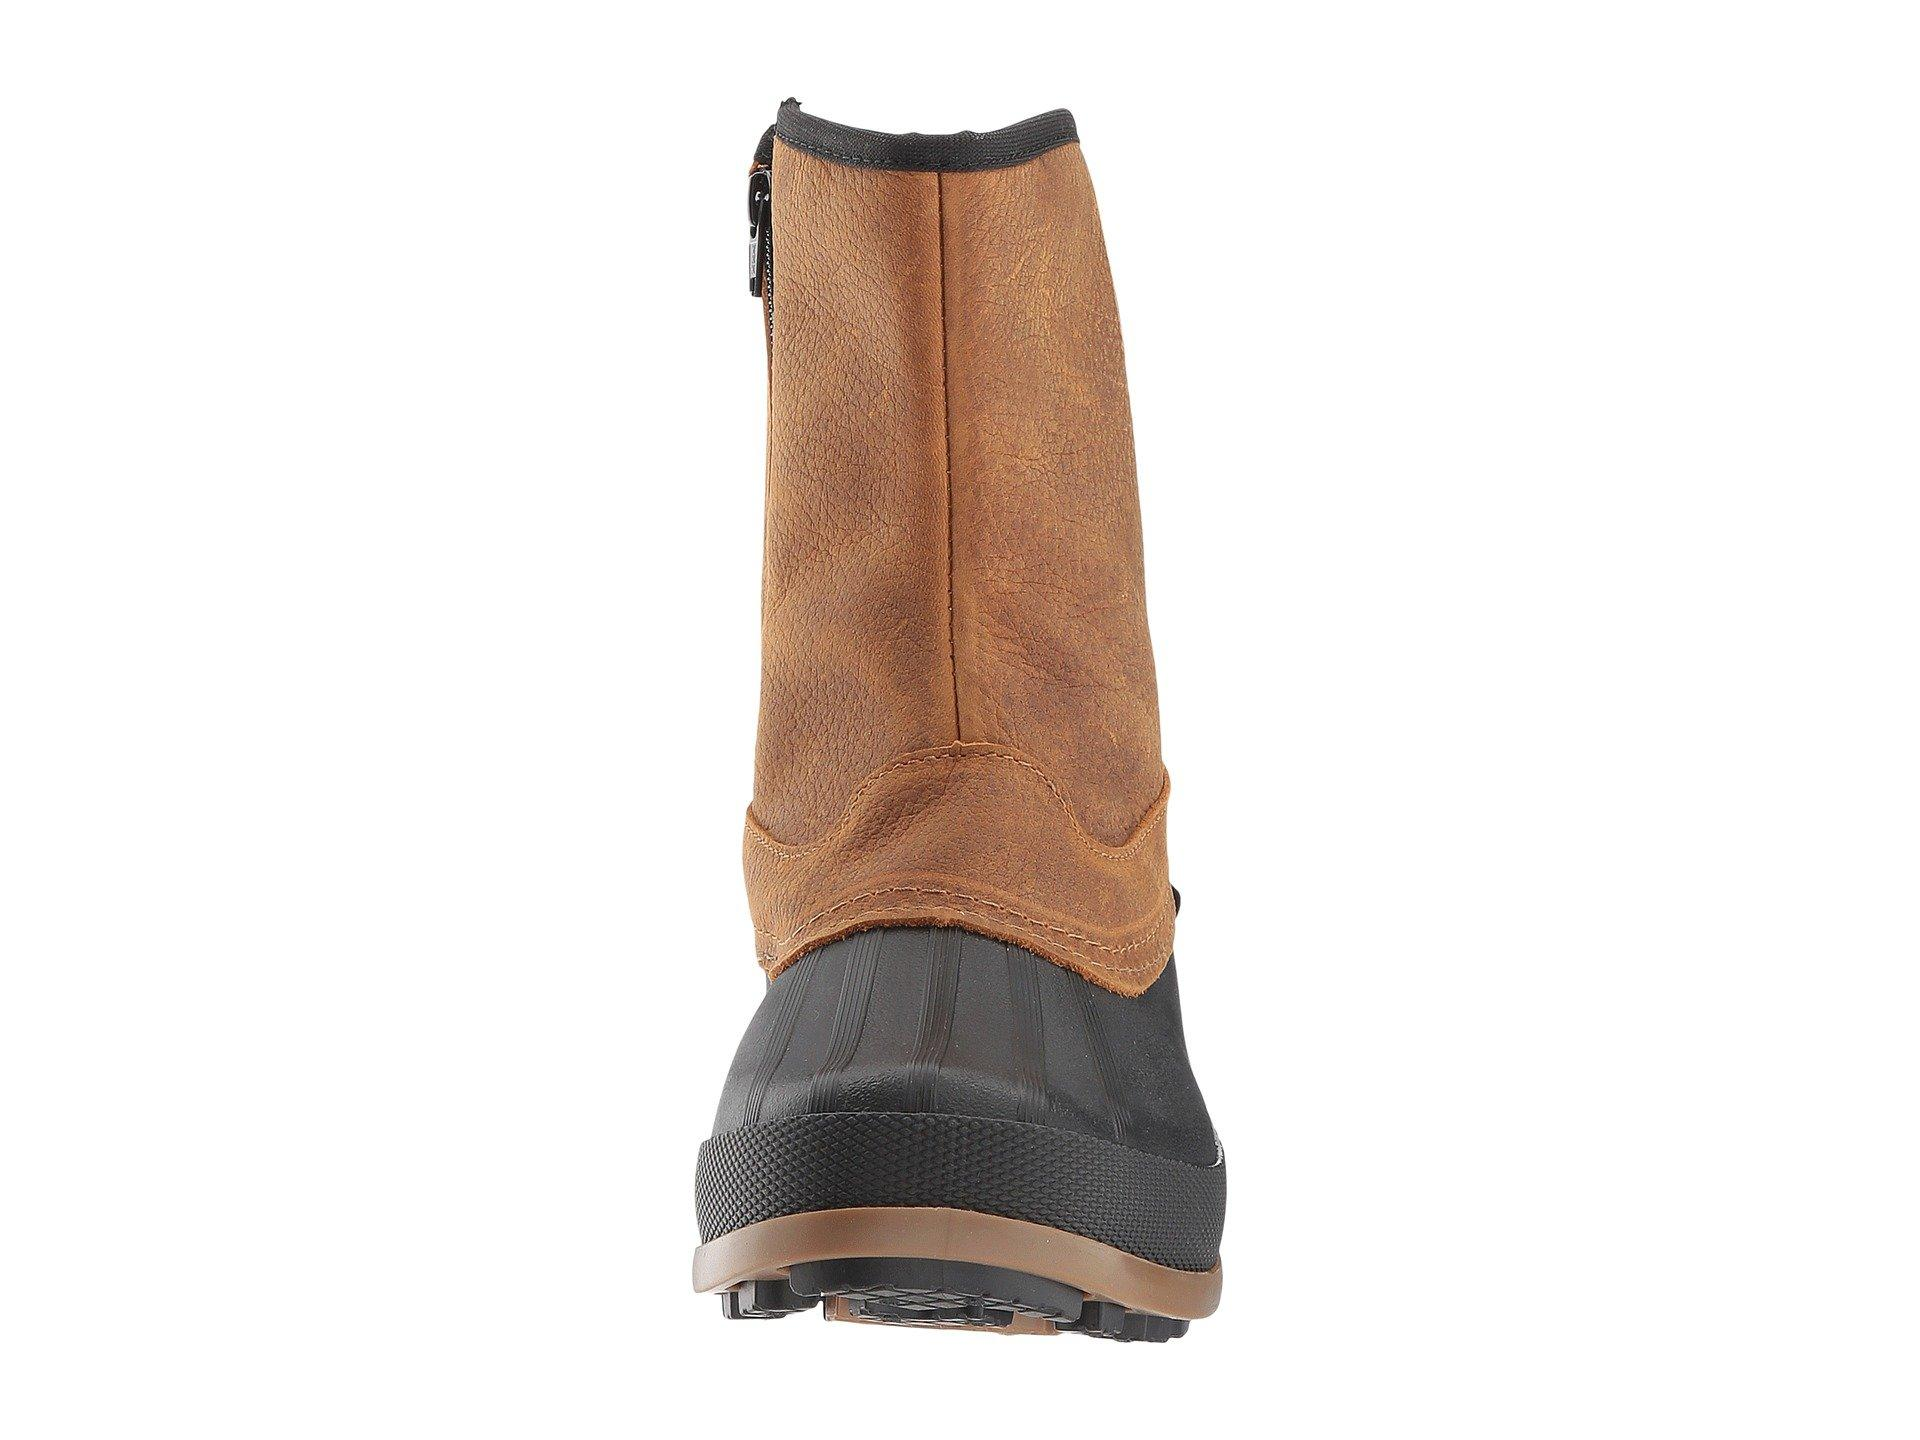 3dd746eb63b898 Lyst - Tundra Boots Monique in Brown - Save 56%